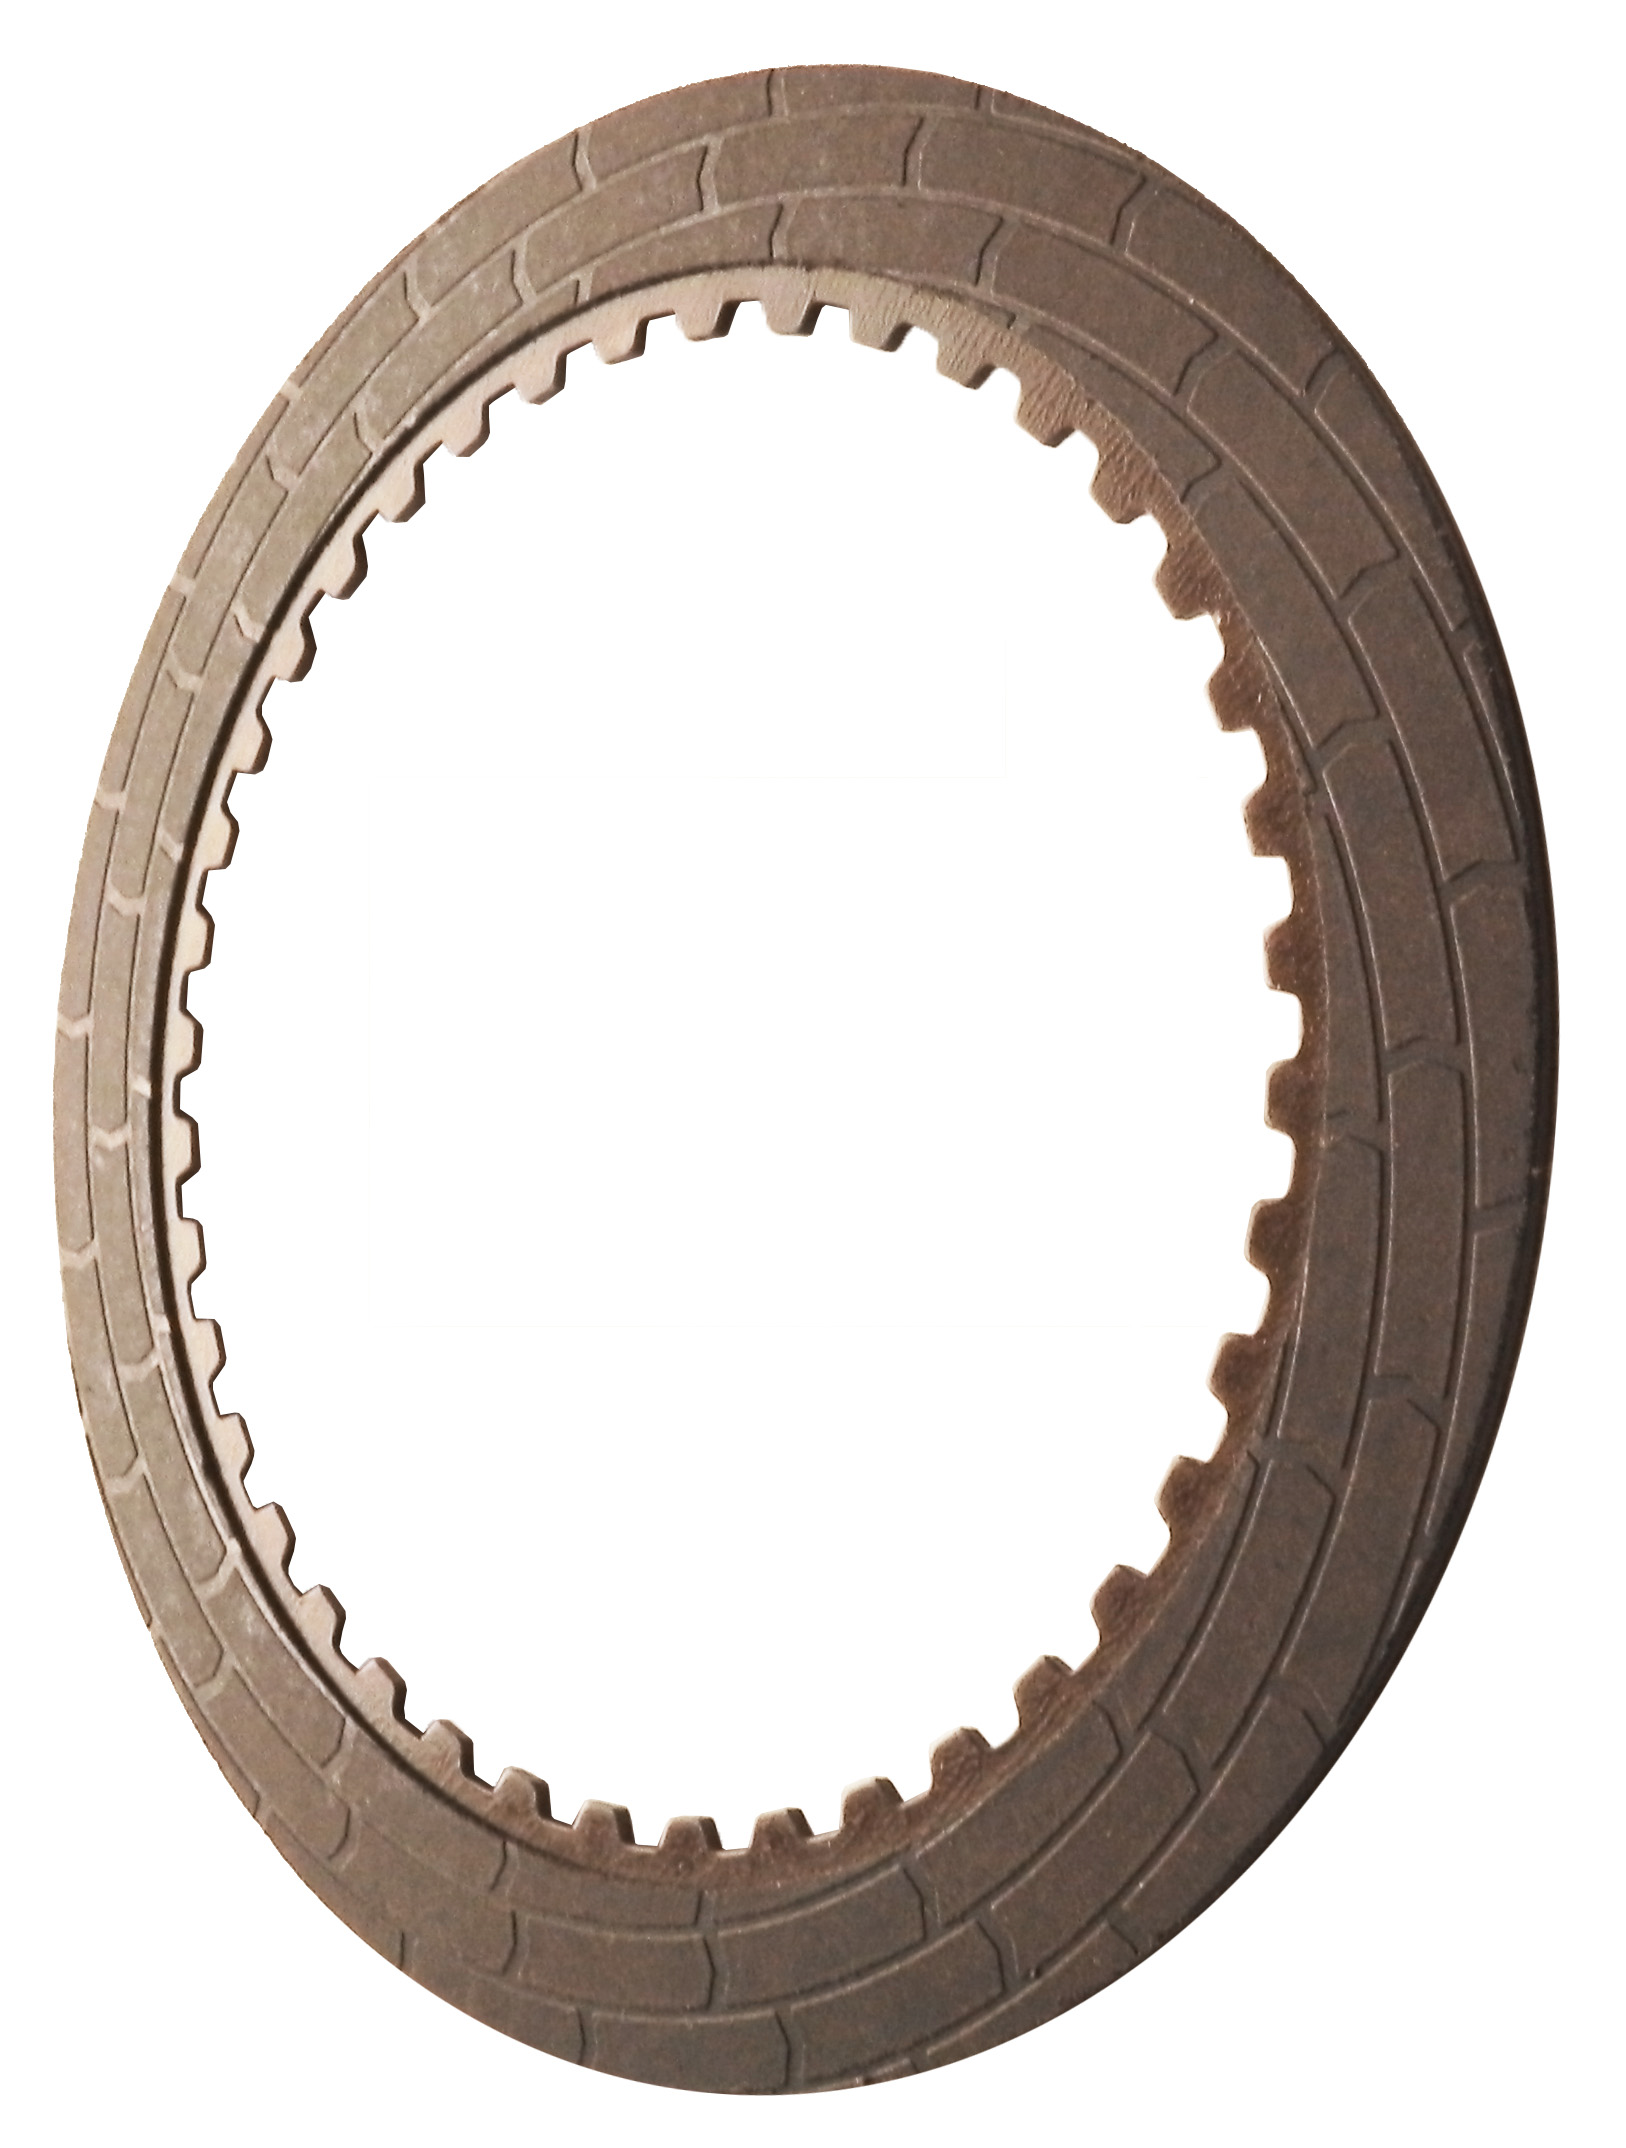 RH561315 | 1990-ON Friction Clutch Plate (HT) Hybrid Technology Overrun Clutch Proprietary High Energy (HT)